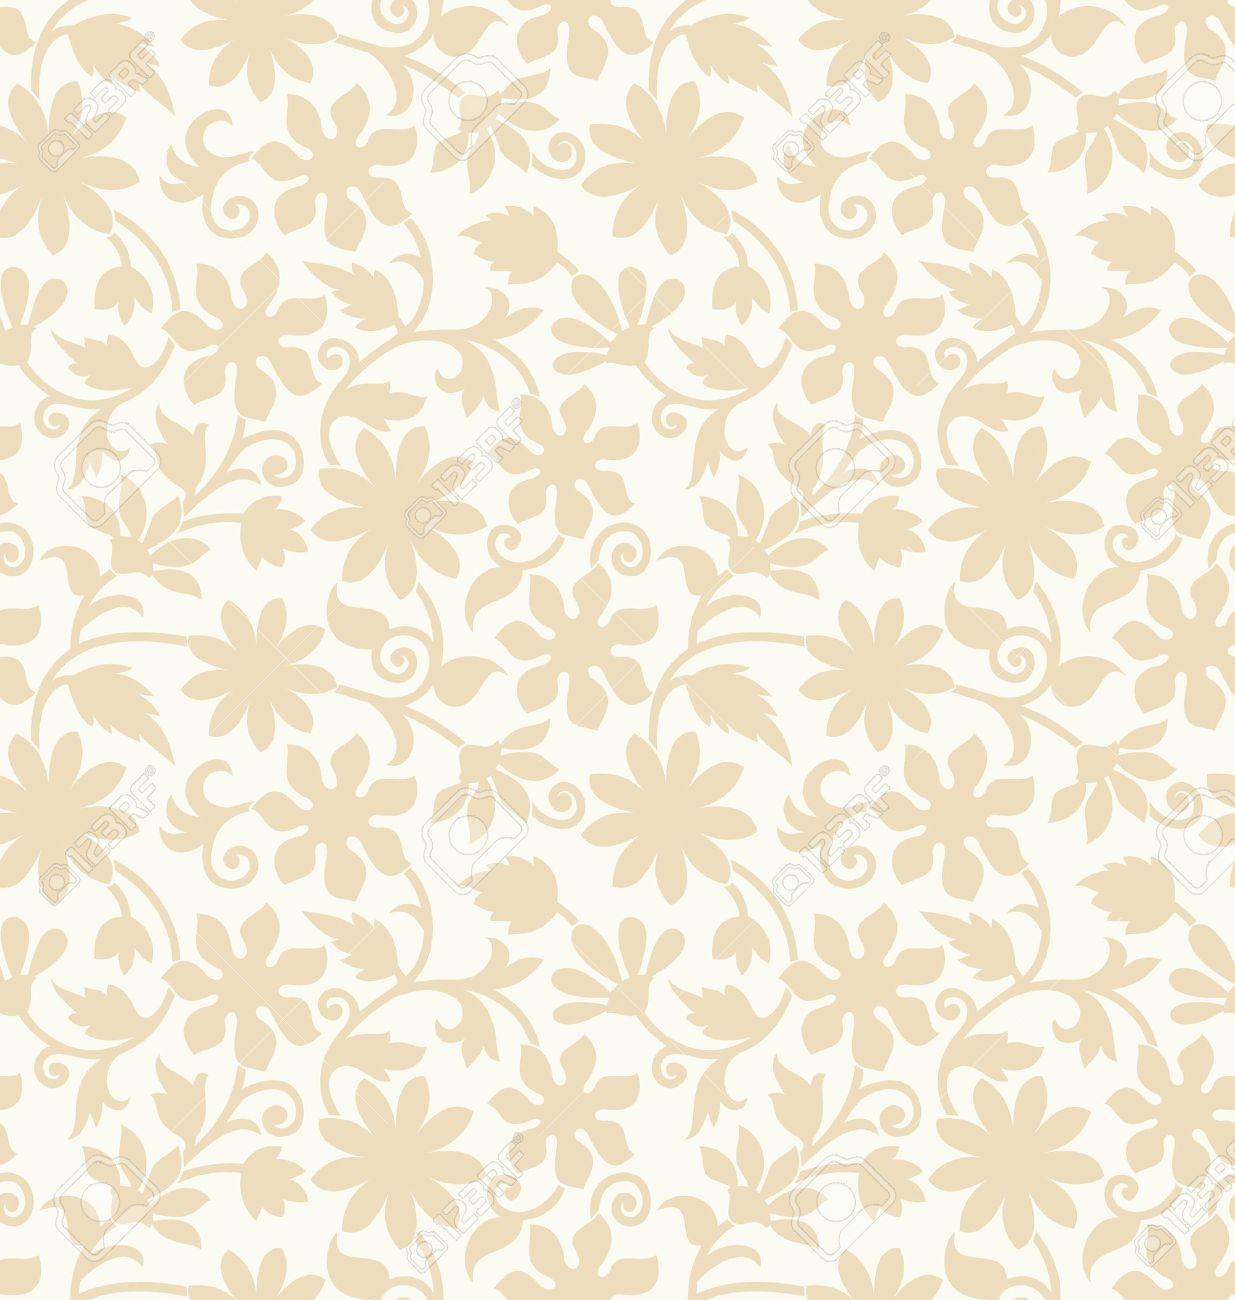 Seamless Invitation Card Background Pattern Royalty Free Cliparts